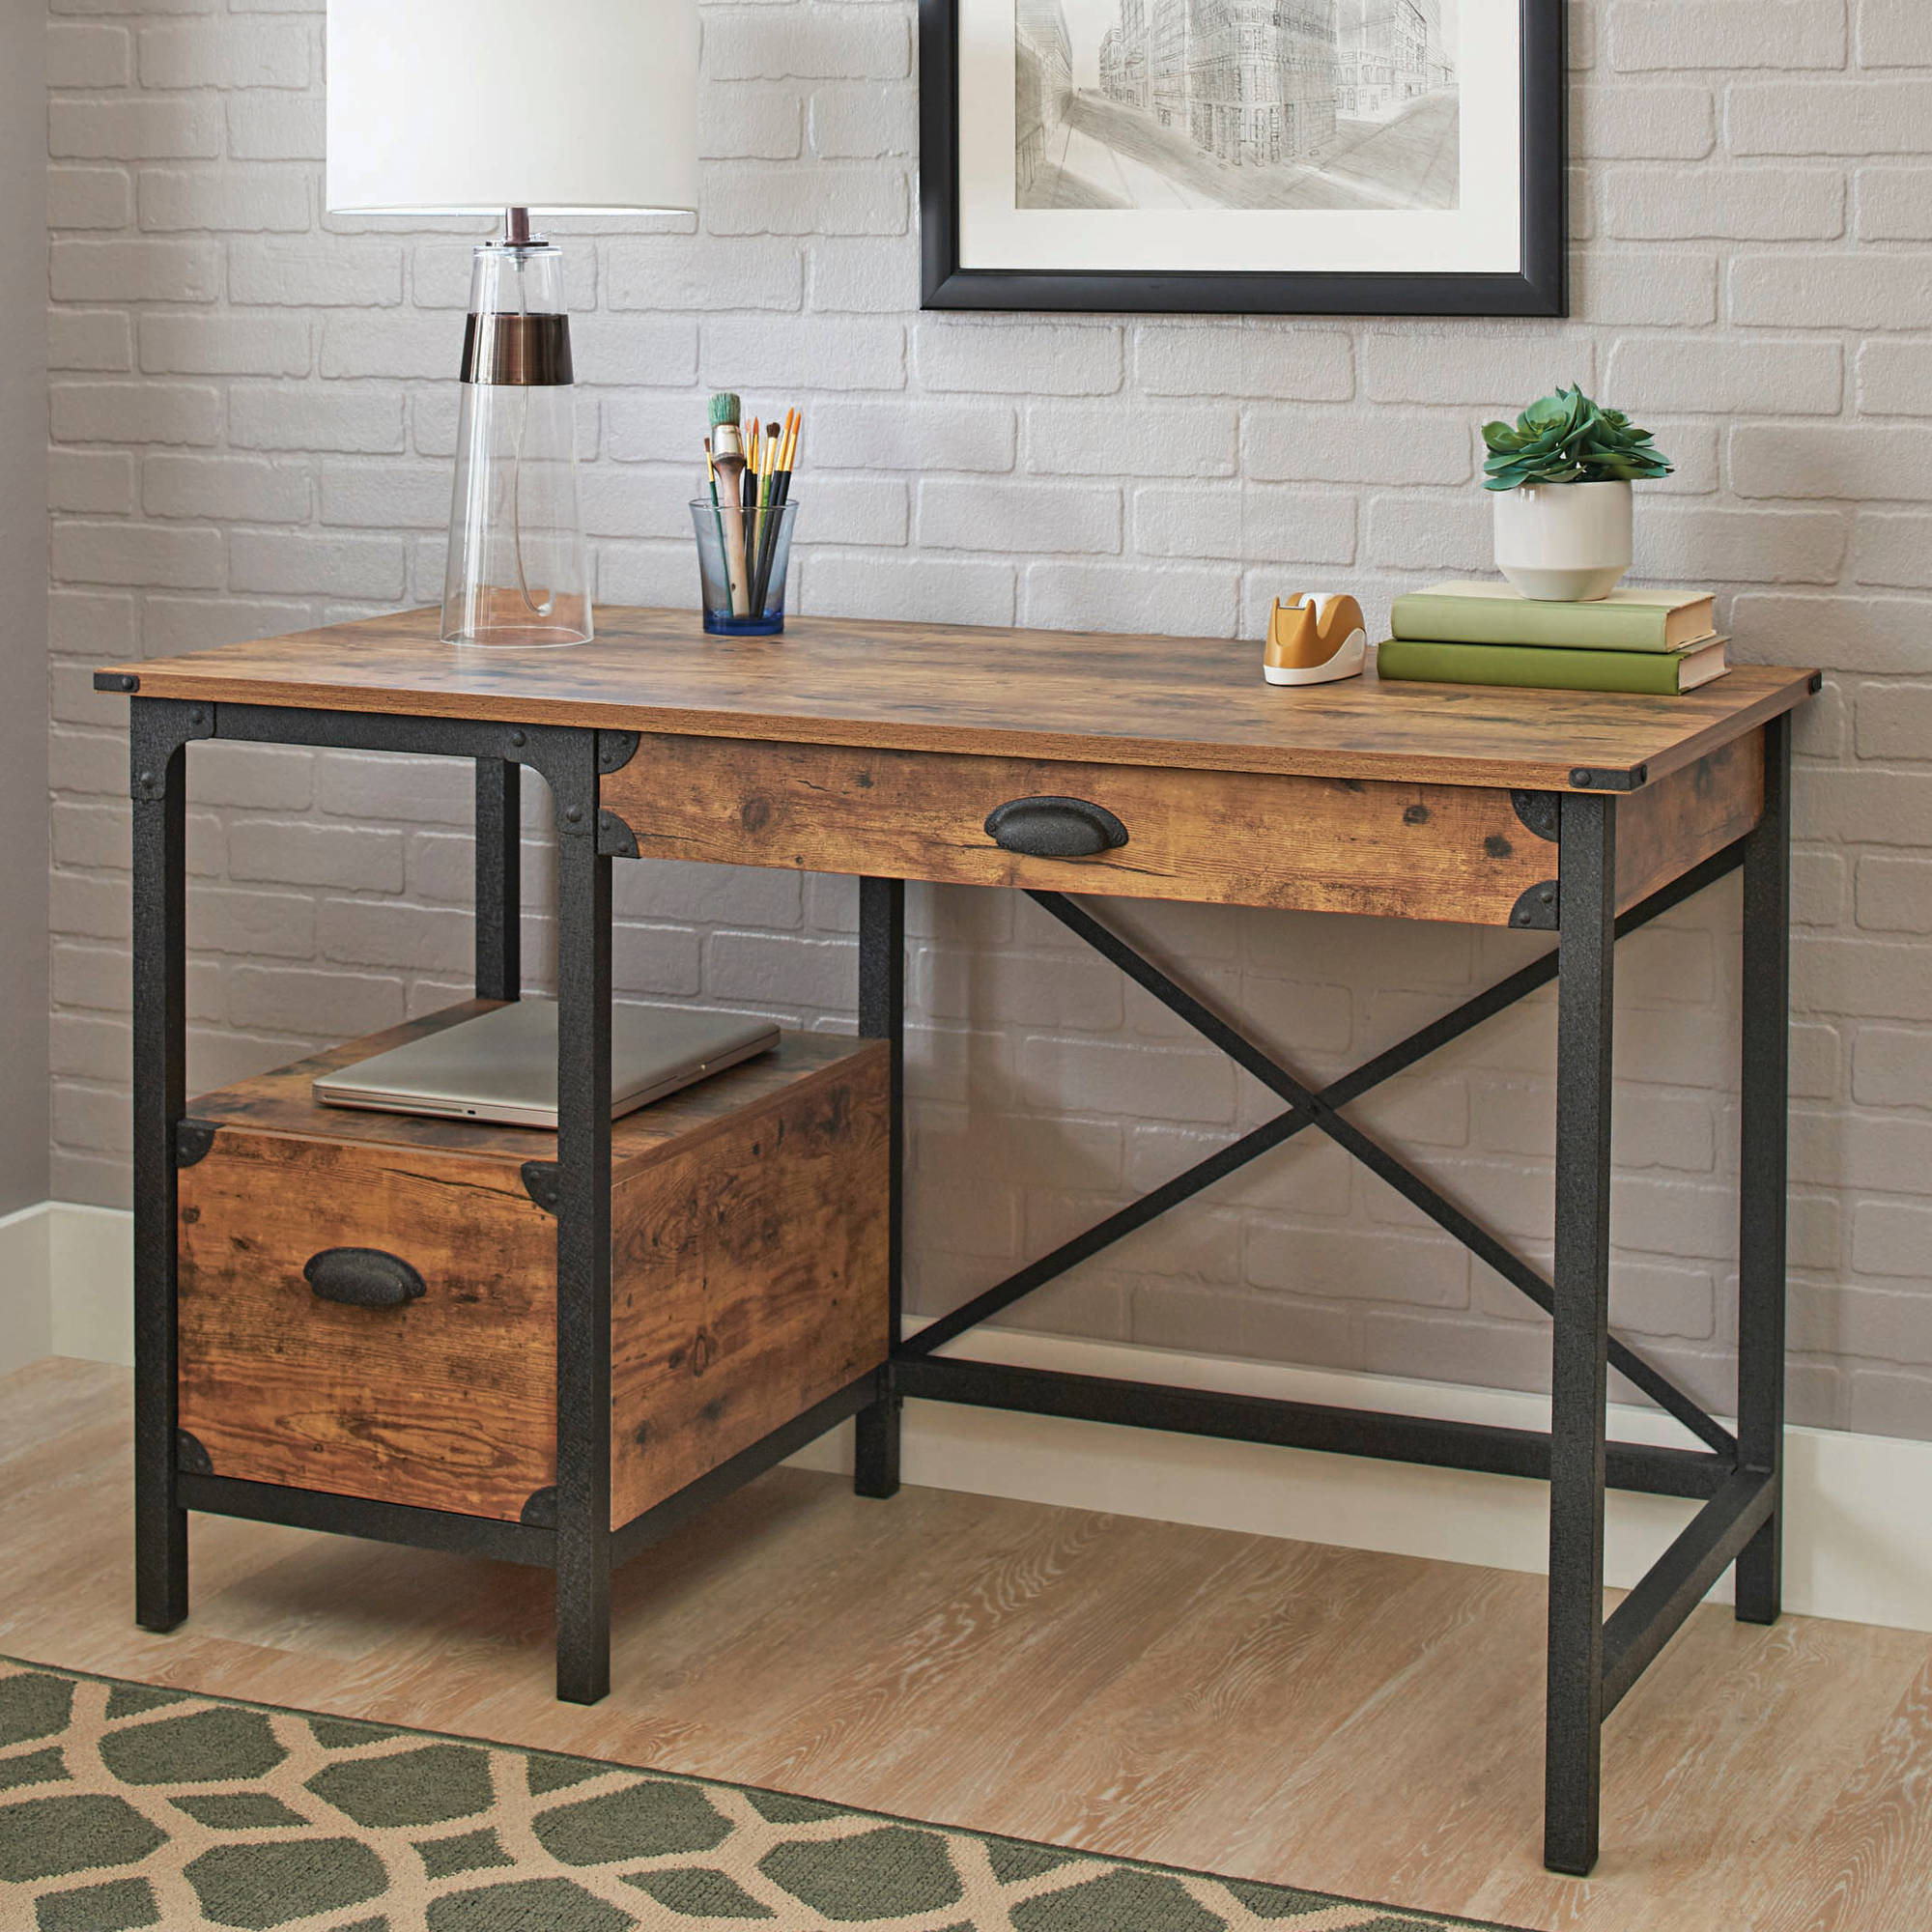 Fashionable Better Homes & Gardens Rustic Country Desk, Weathered Pine Throughout Country Dining Tables With Weathered Pine Finish (View 15 of 30)